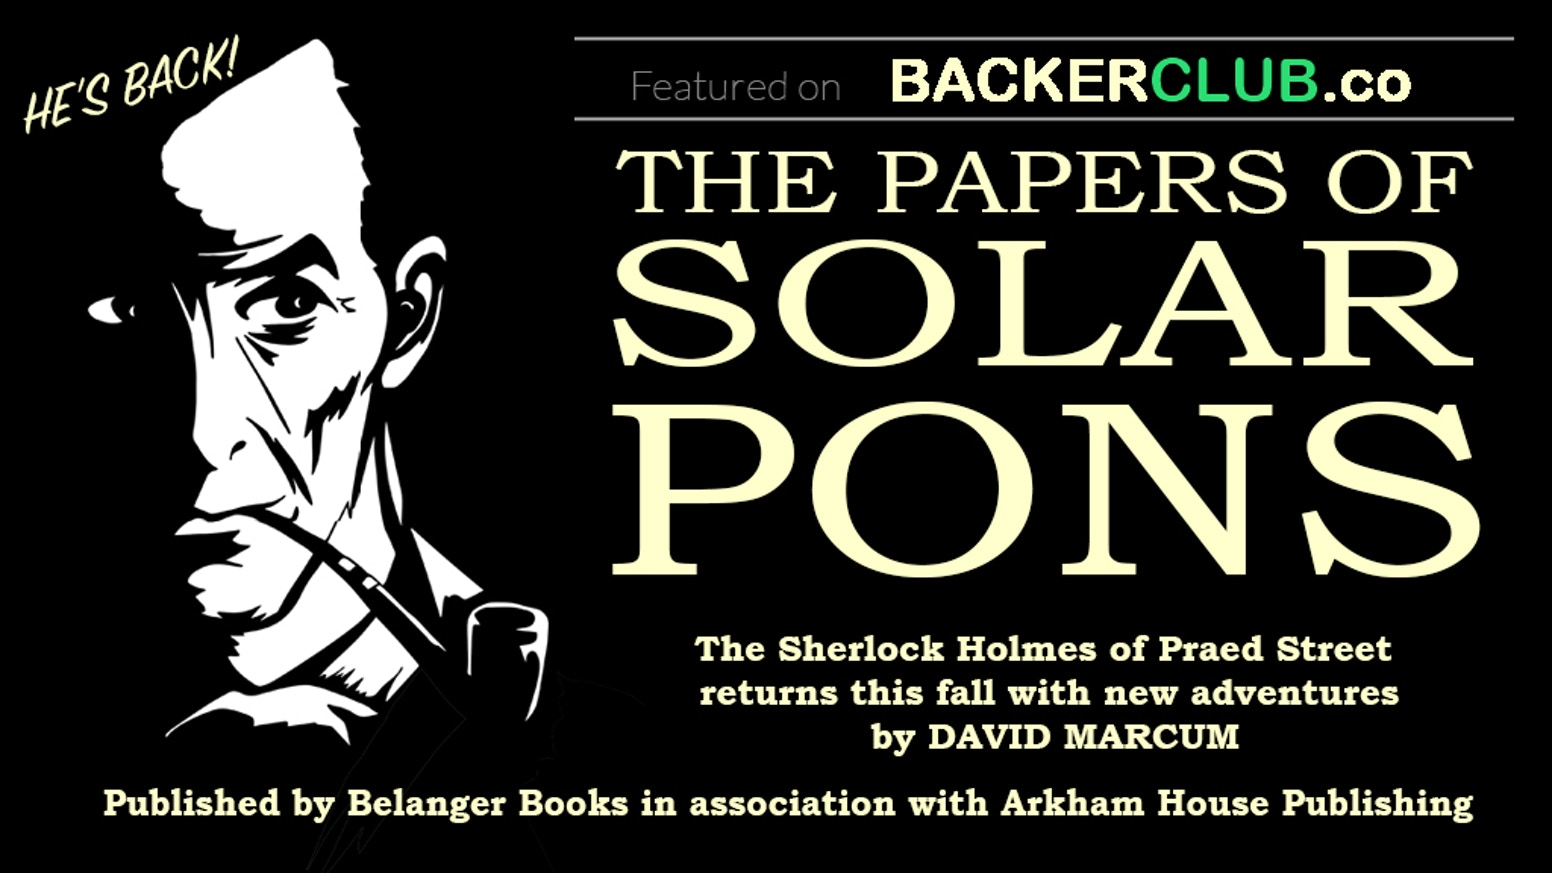 The first collection of new stories of Solar Pons, the Sherlock Holmes of Praed Street, published in the 21st century